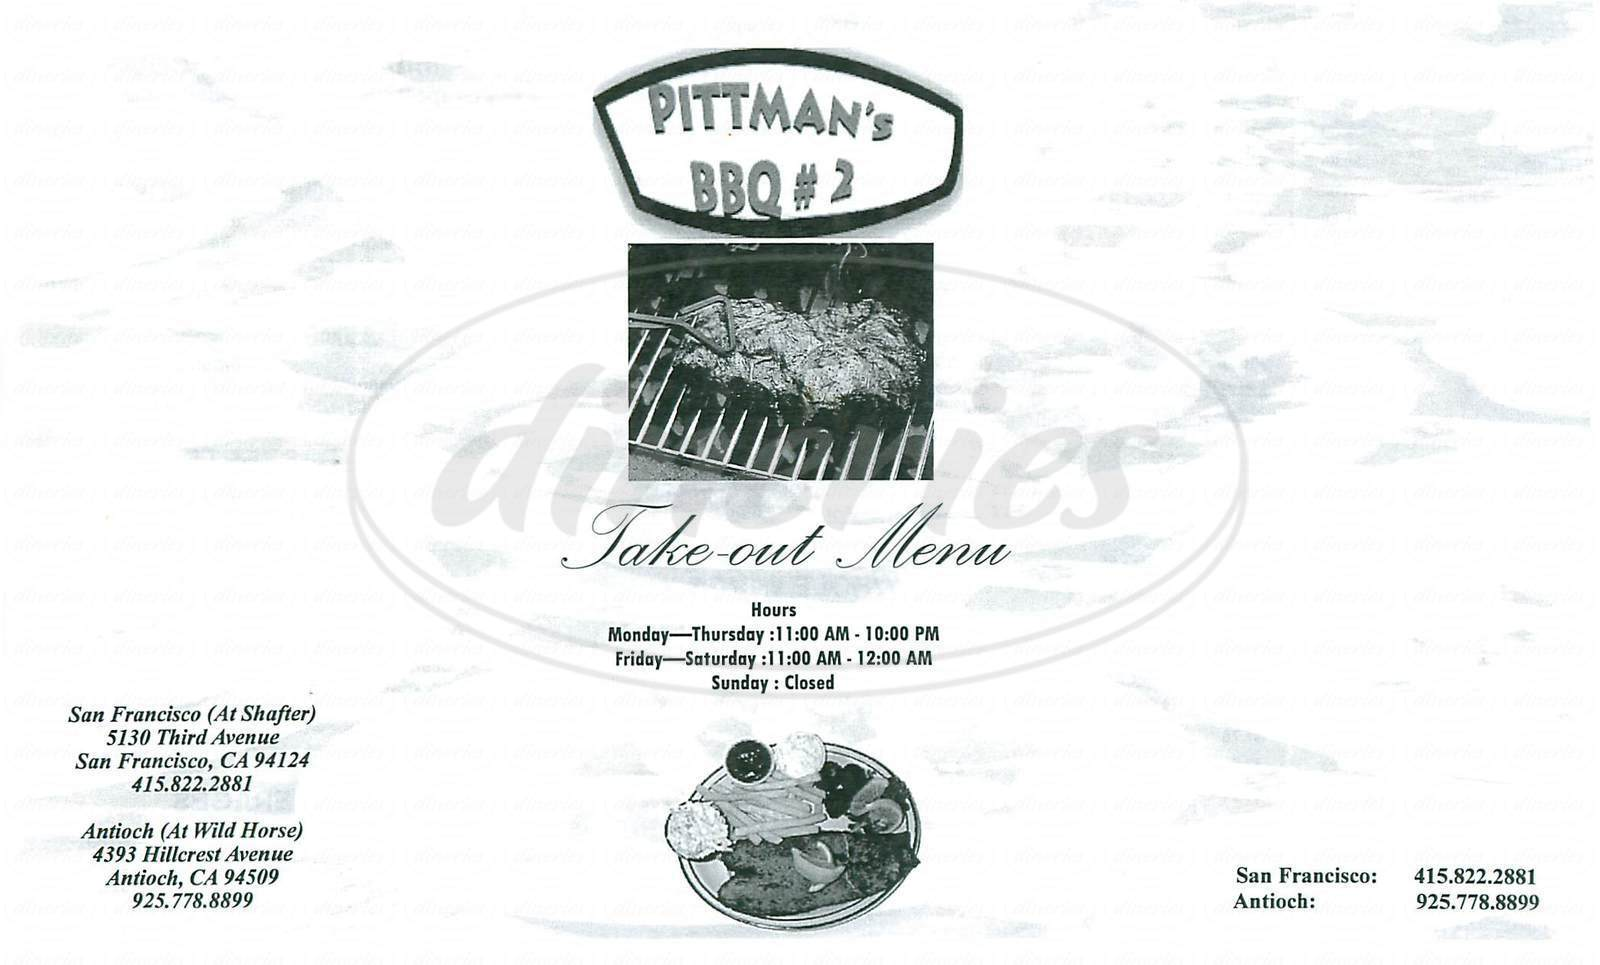 menu for Pittmans BBQ 2